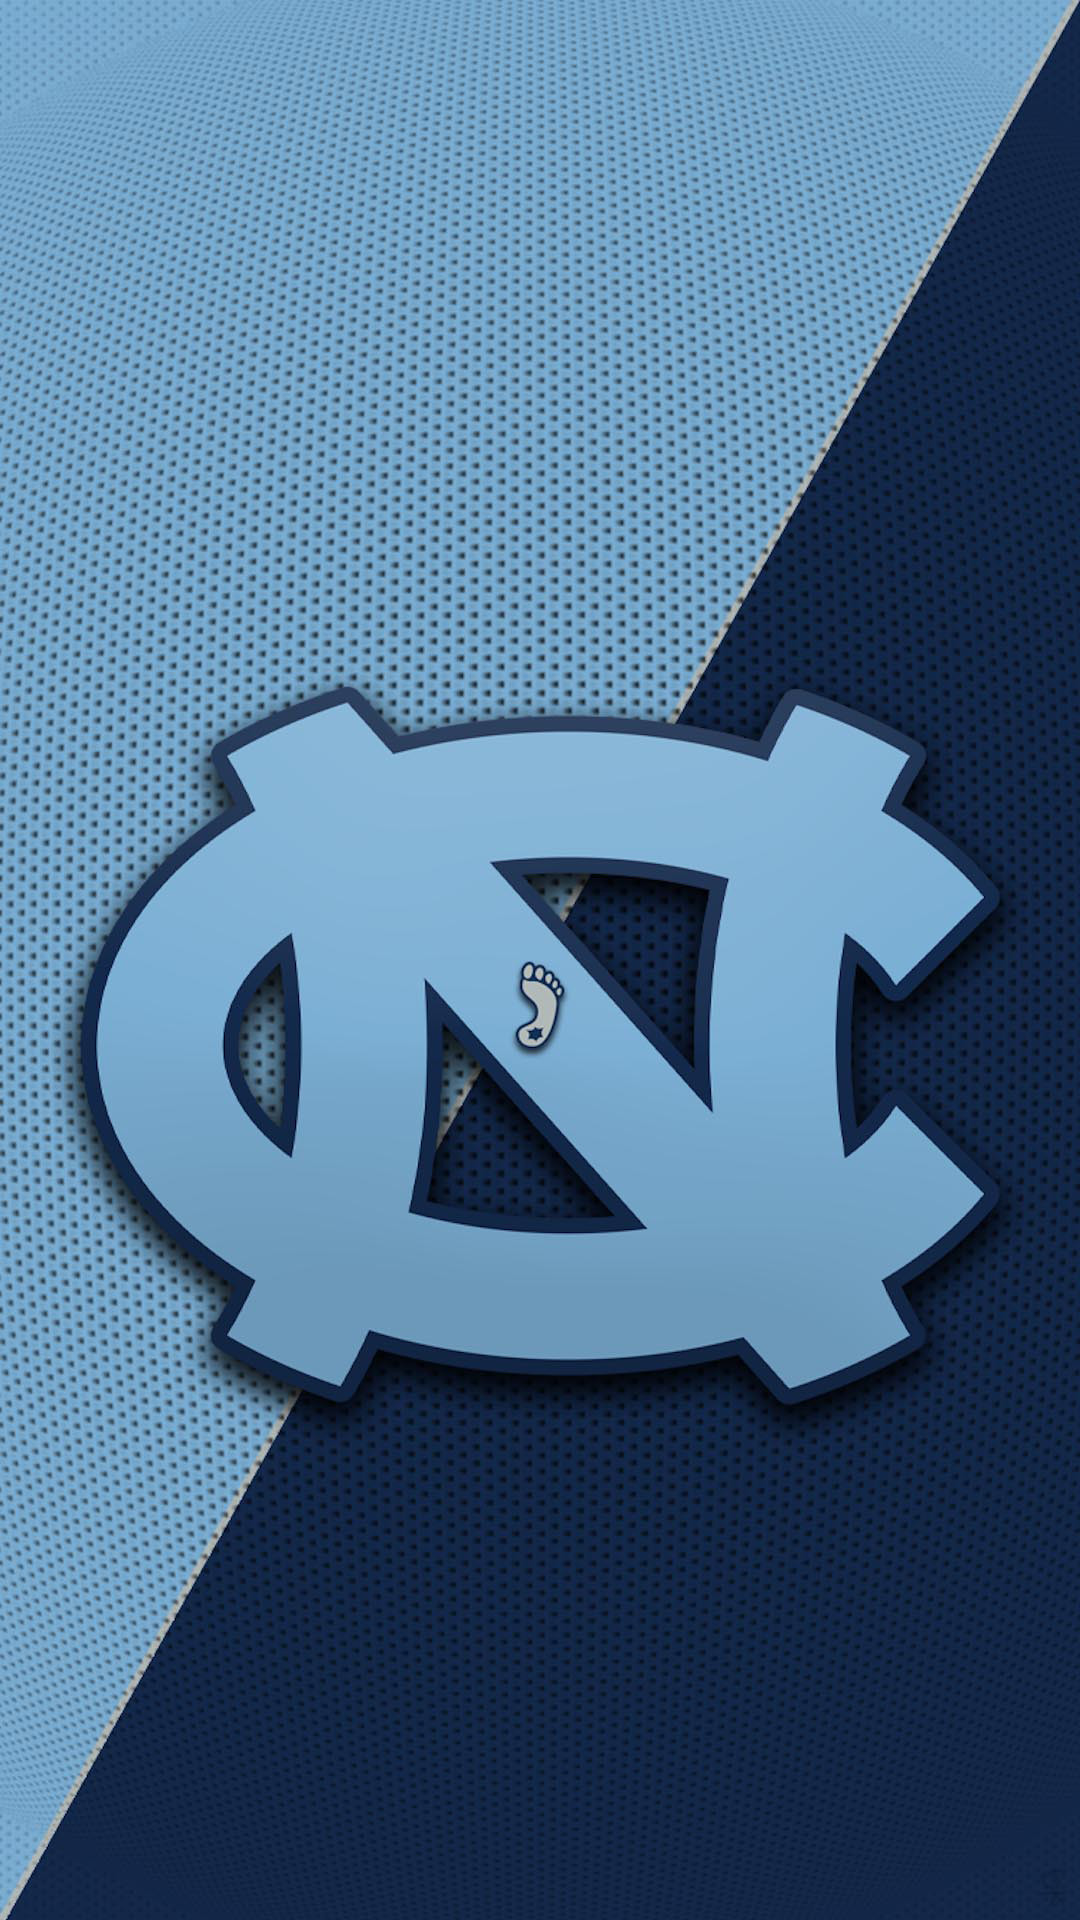 1080x1920 North Carolina Tar Heels.png